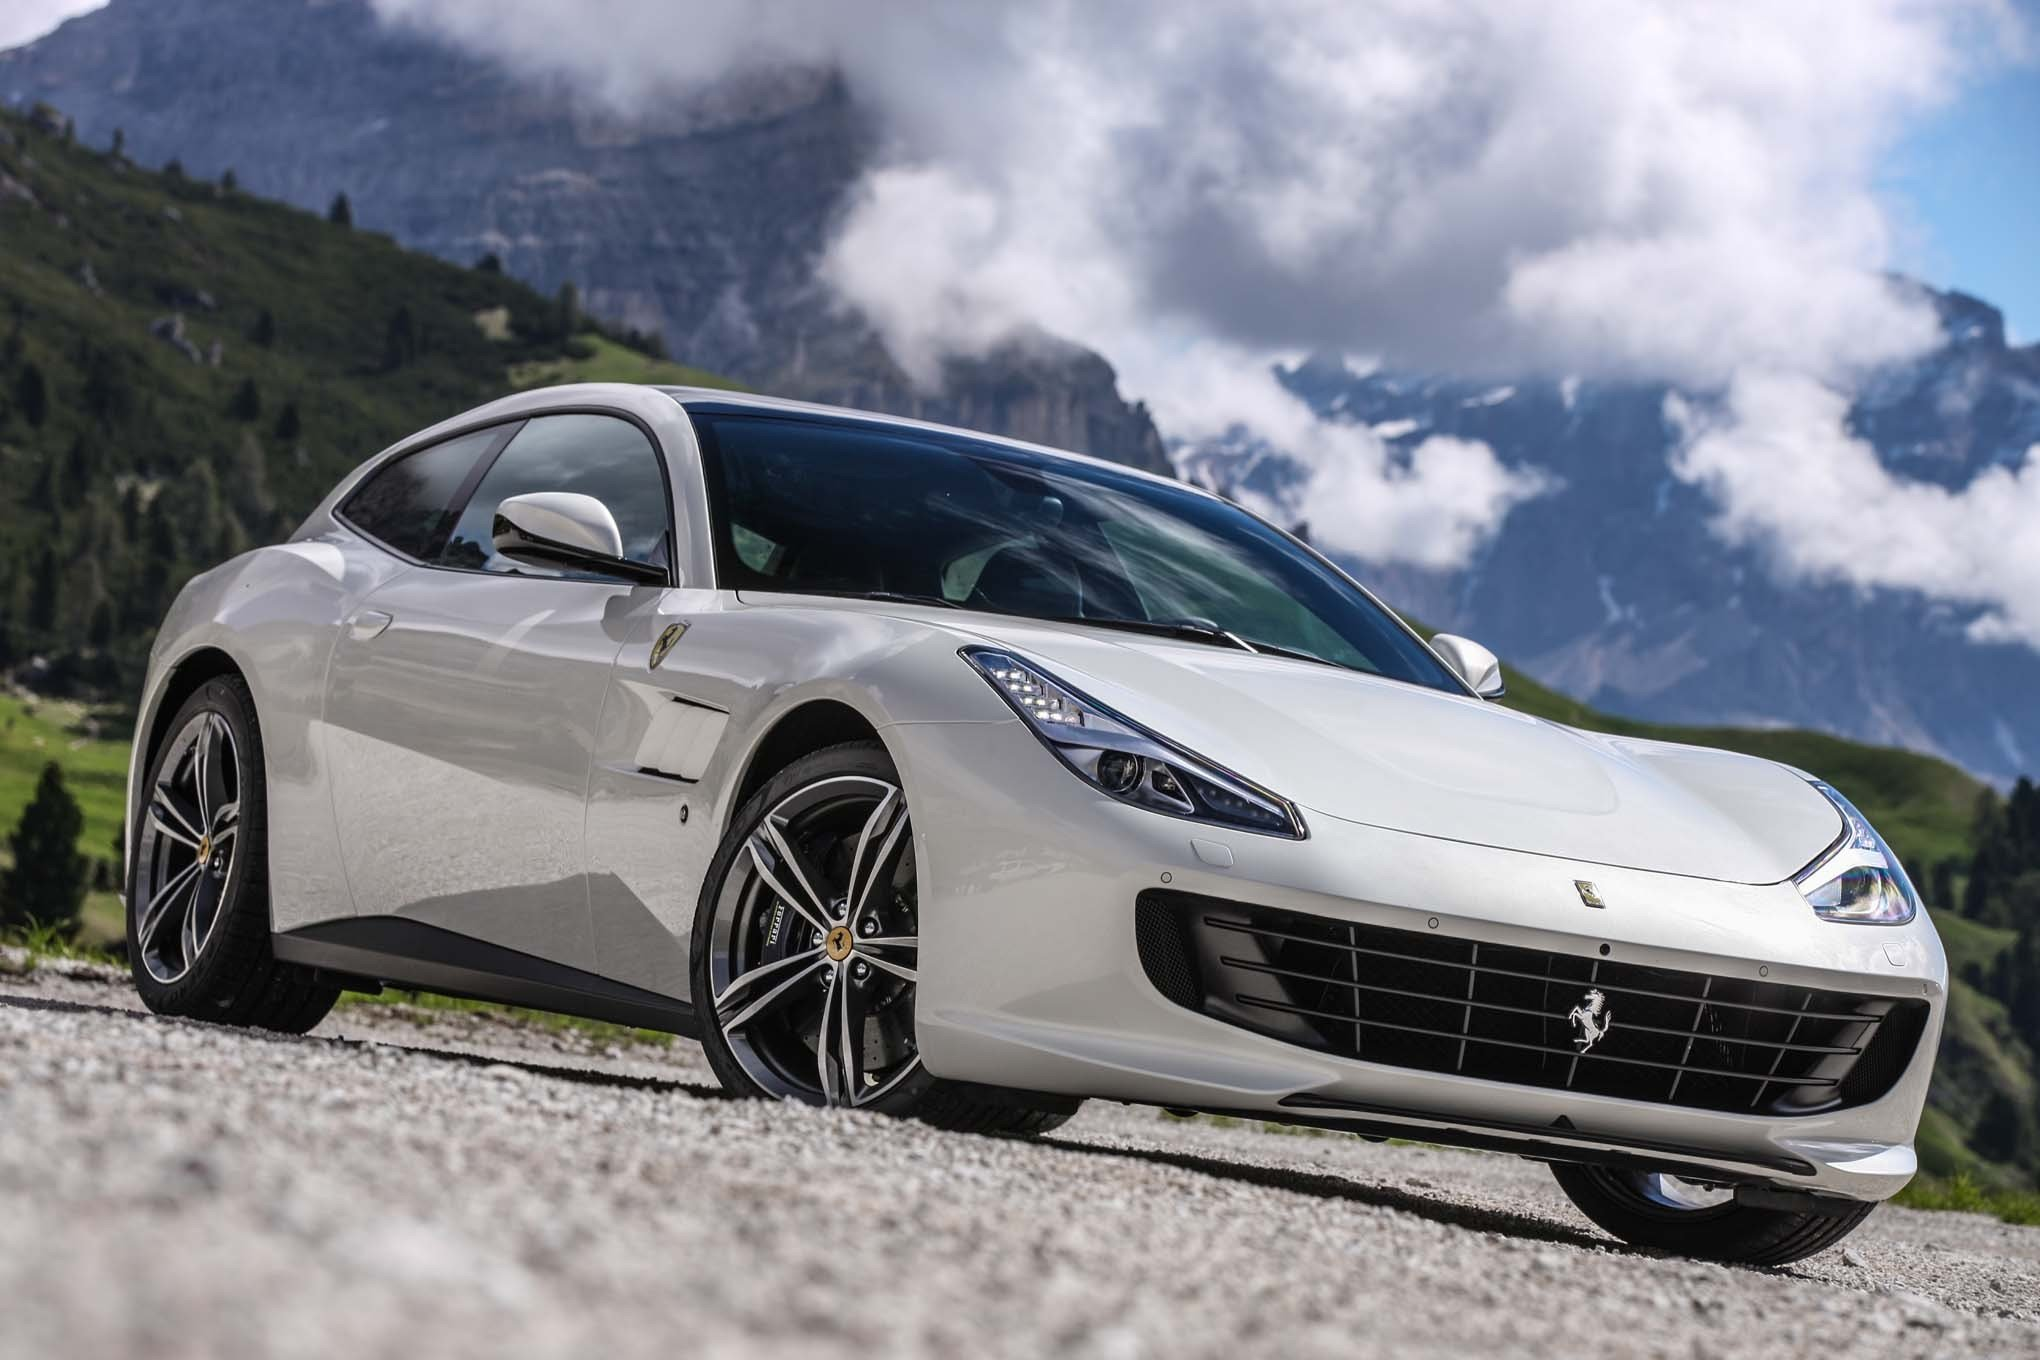 New 2017 Ferrari Gtc4Lusso Reviews Research Gtc4Lusso Prices On This Month